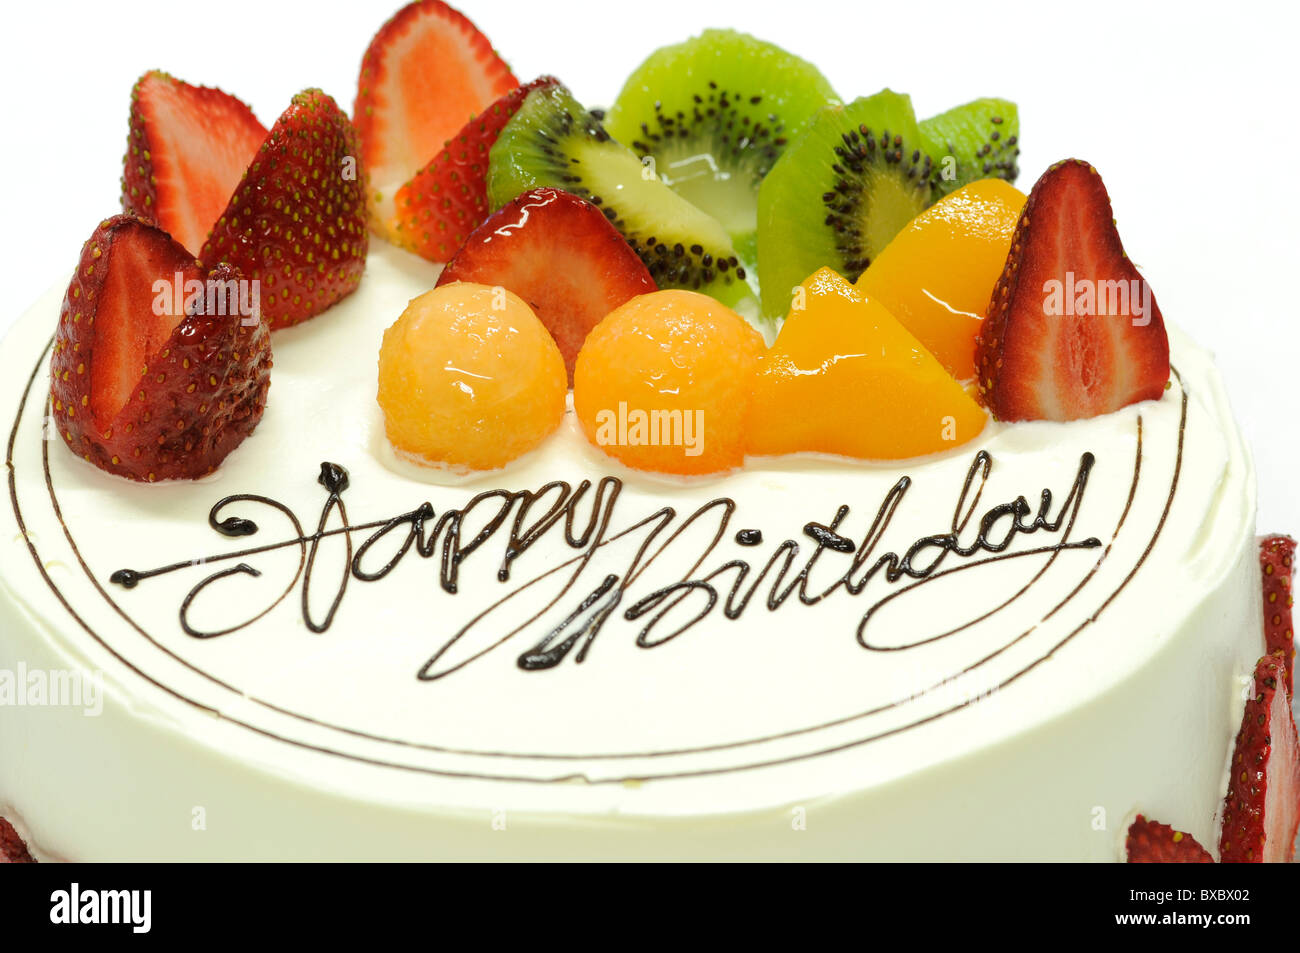 Tasty colorful fruit cake with happy birthday on it Stock Photo